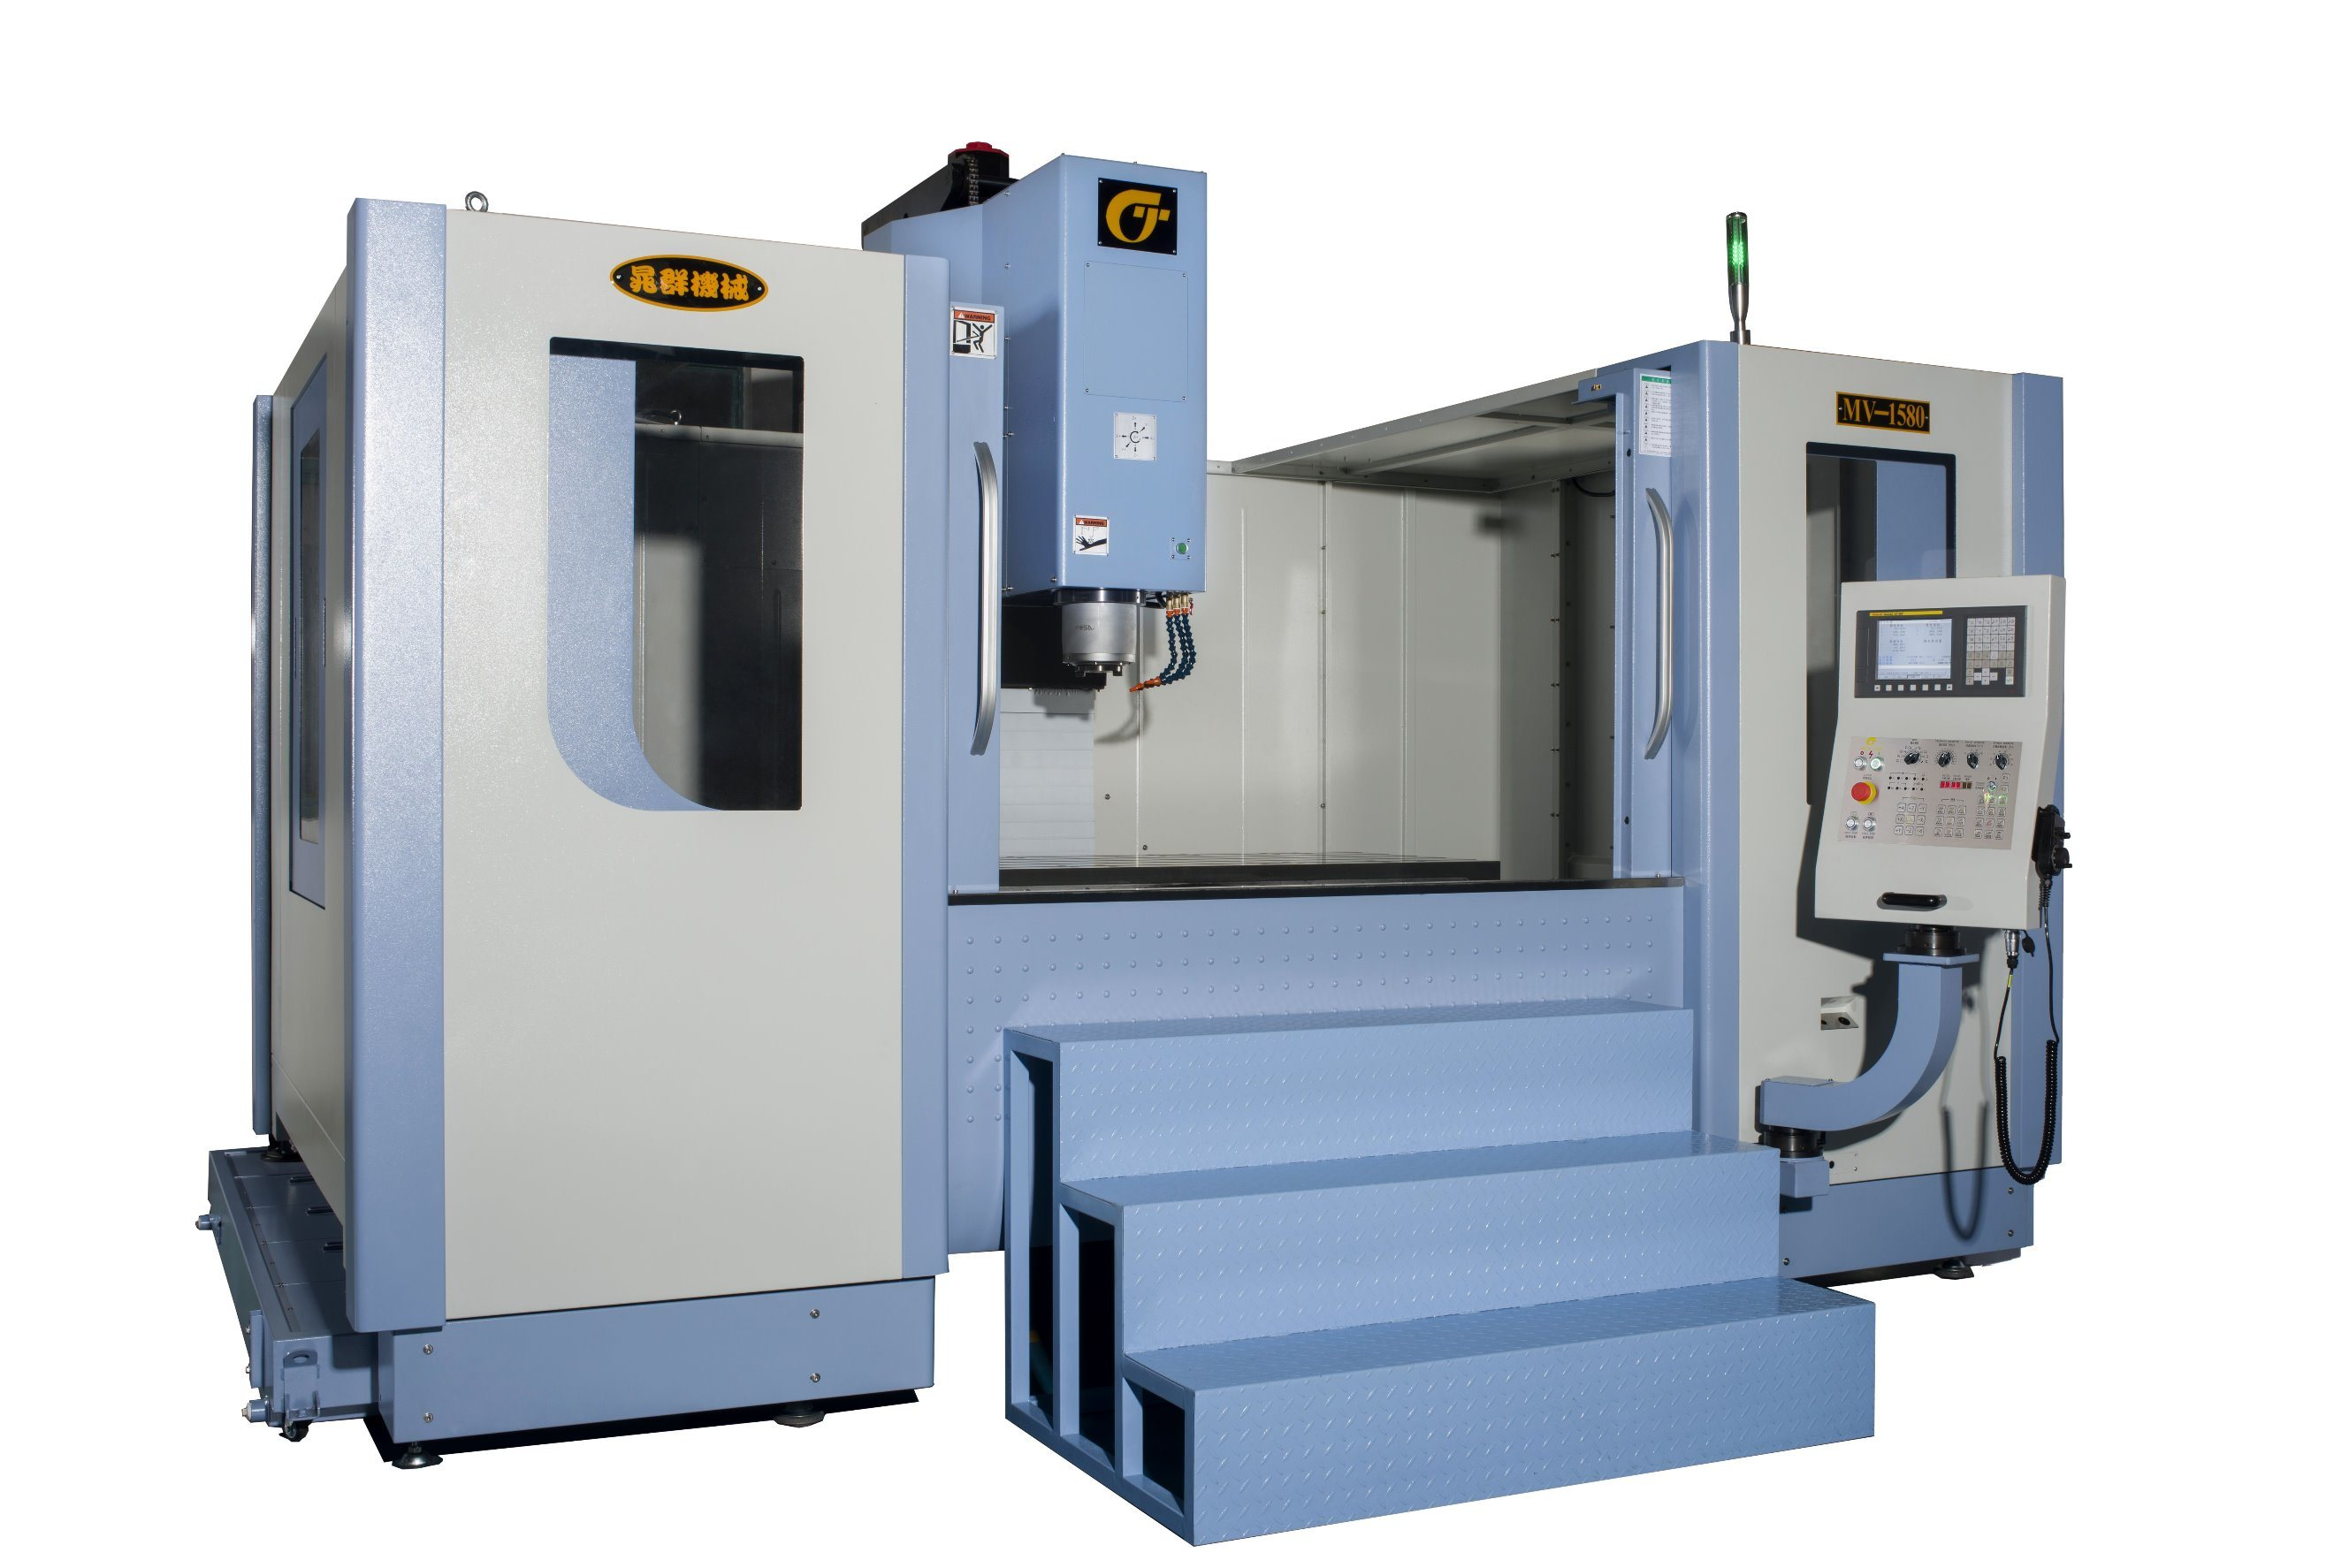 Large Vertical CNC Milling Machine for Big Mould and Parts (MV-1890)